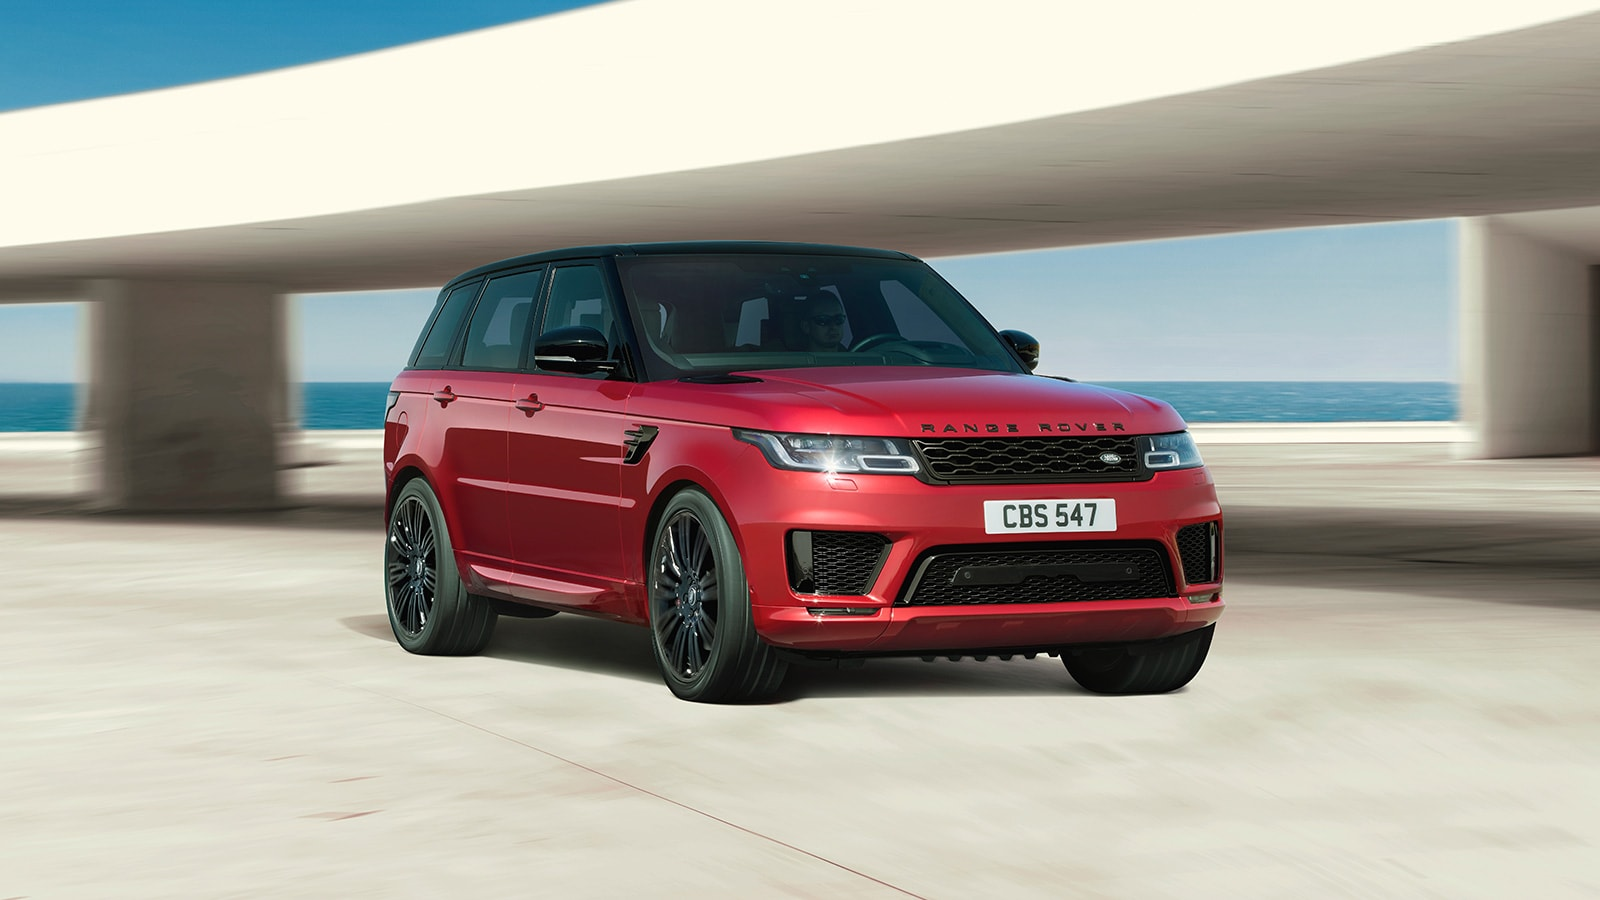 RANGE ROVER SV AUTOBIOGRAPHY DYNAMIC, UN LUJO INCOMPARABLE